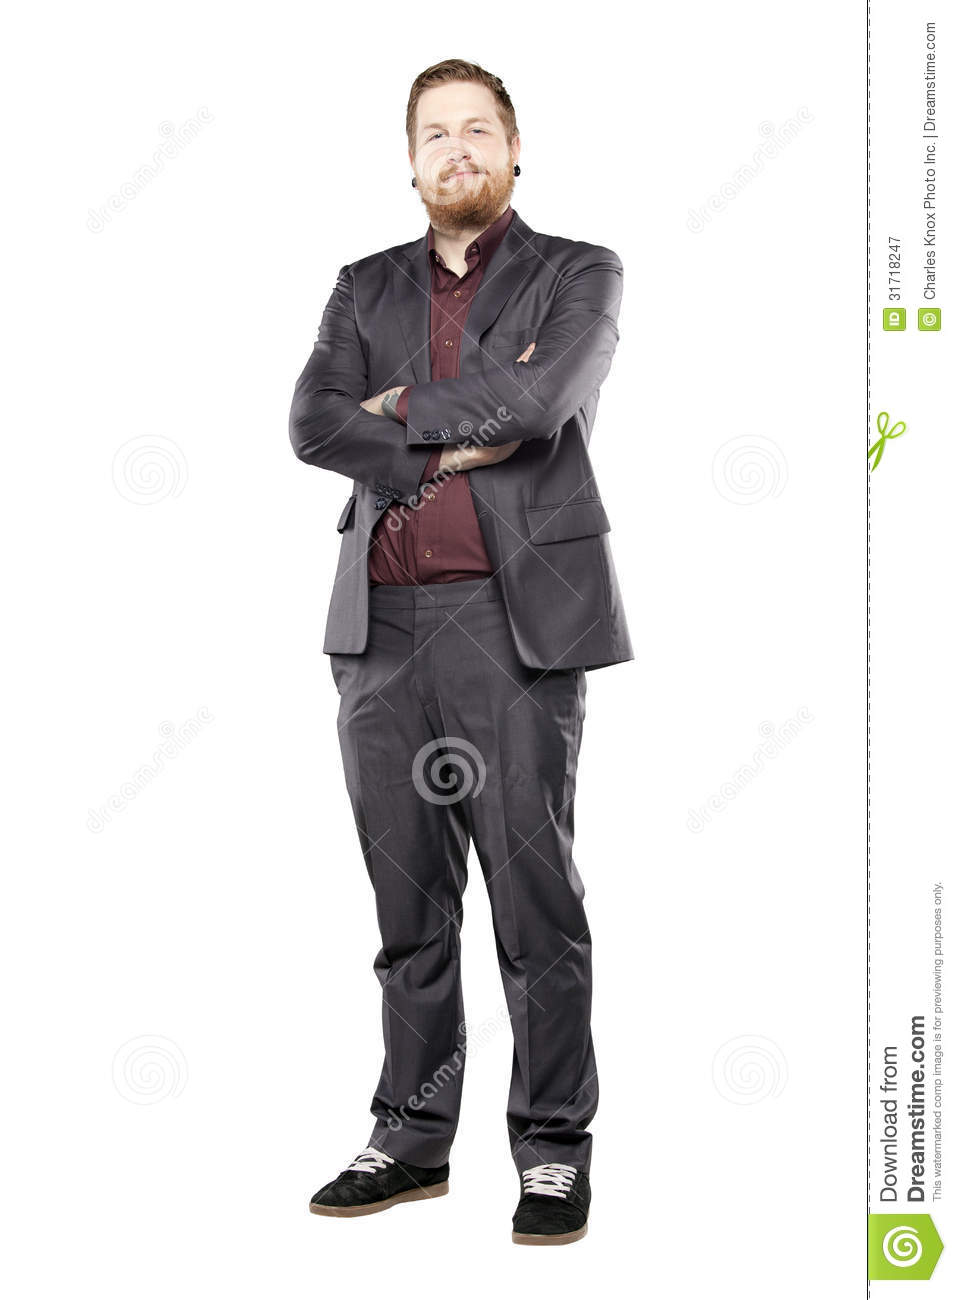 15 Year Boys Bedroom: Young Man In Suit With Tattooes Stock Image